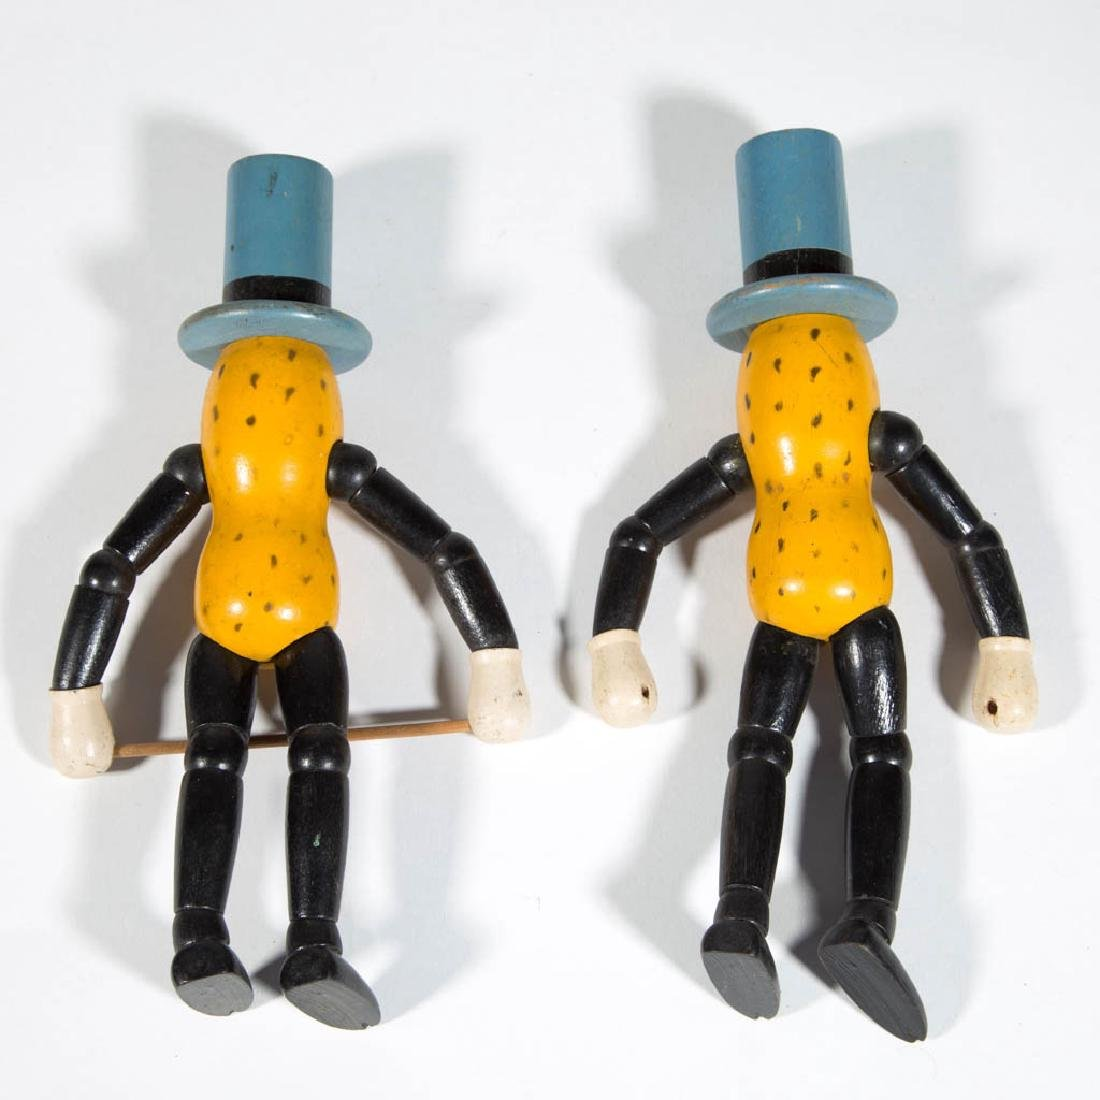 PLANTERS MR. PEANUT JOINTED WOODEN ADVERTISING DOLLS, - 2